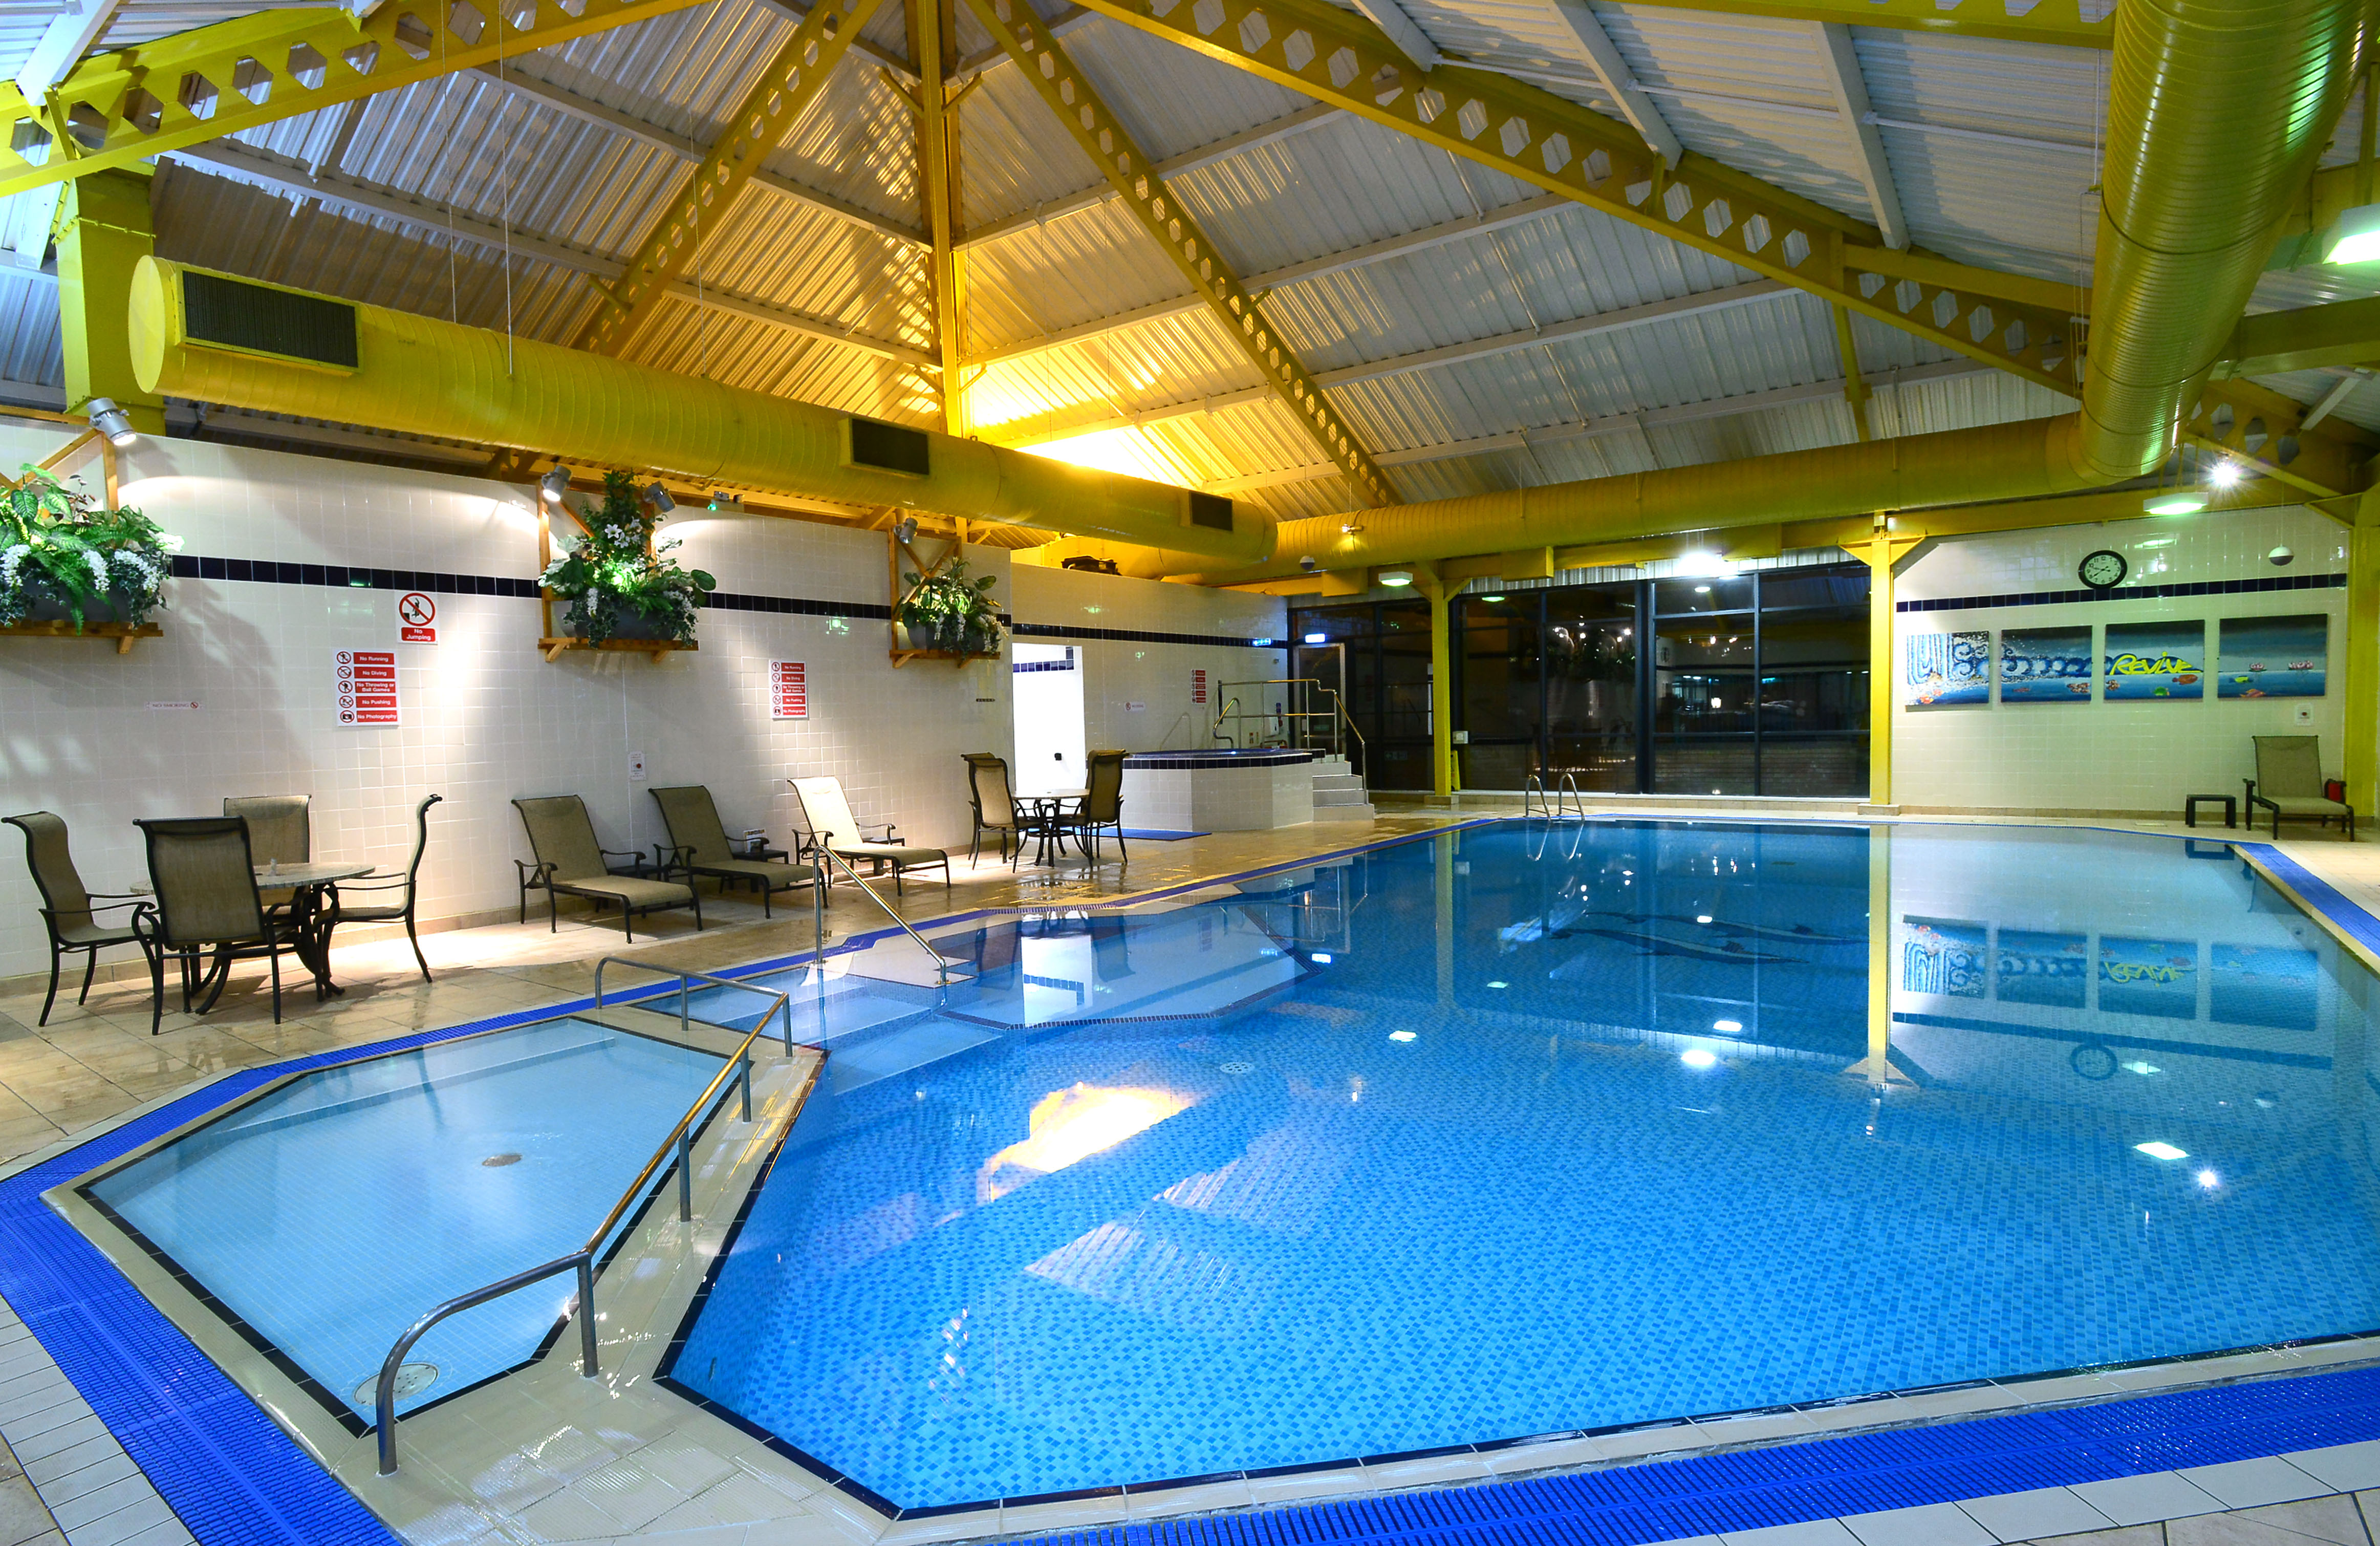 Revive leisure club holiday inn telford ironbridge Holiday inn hotels with swimming pool